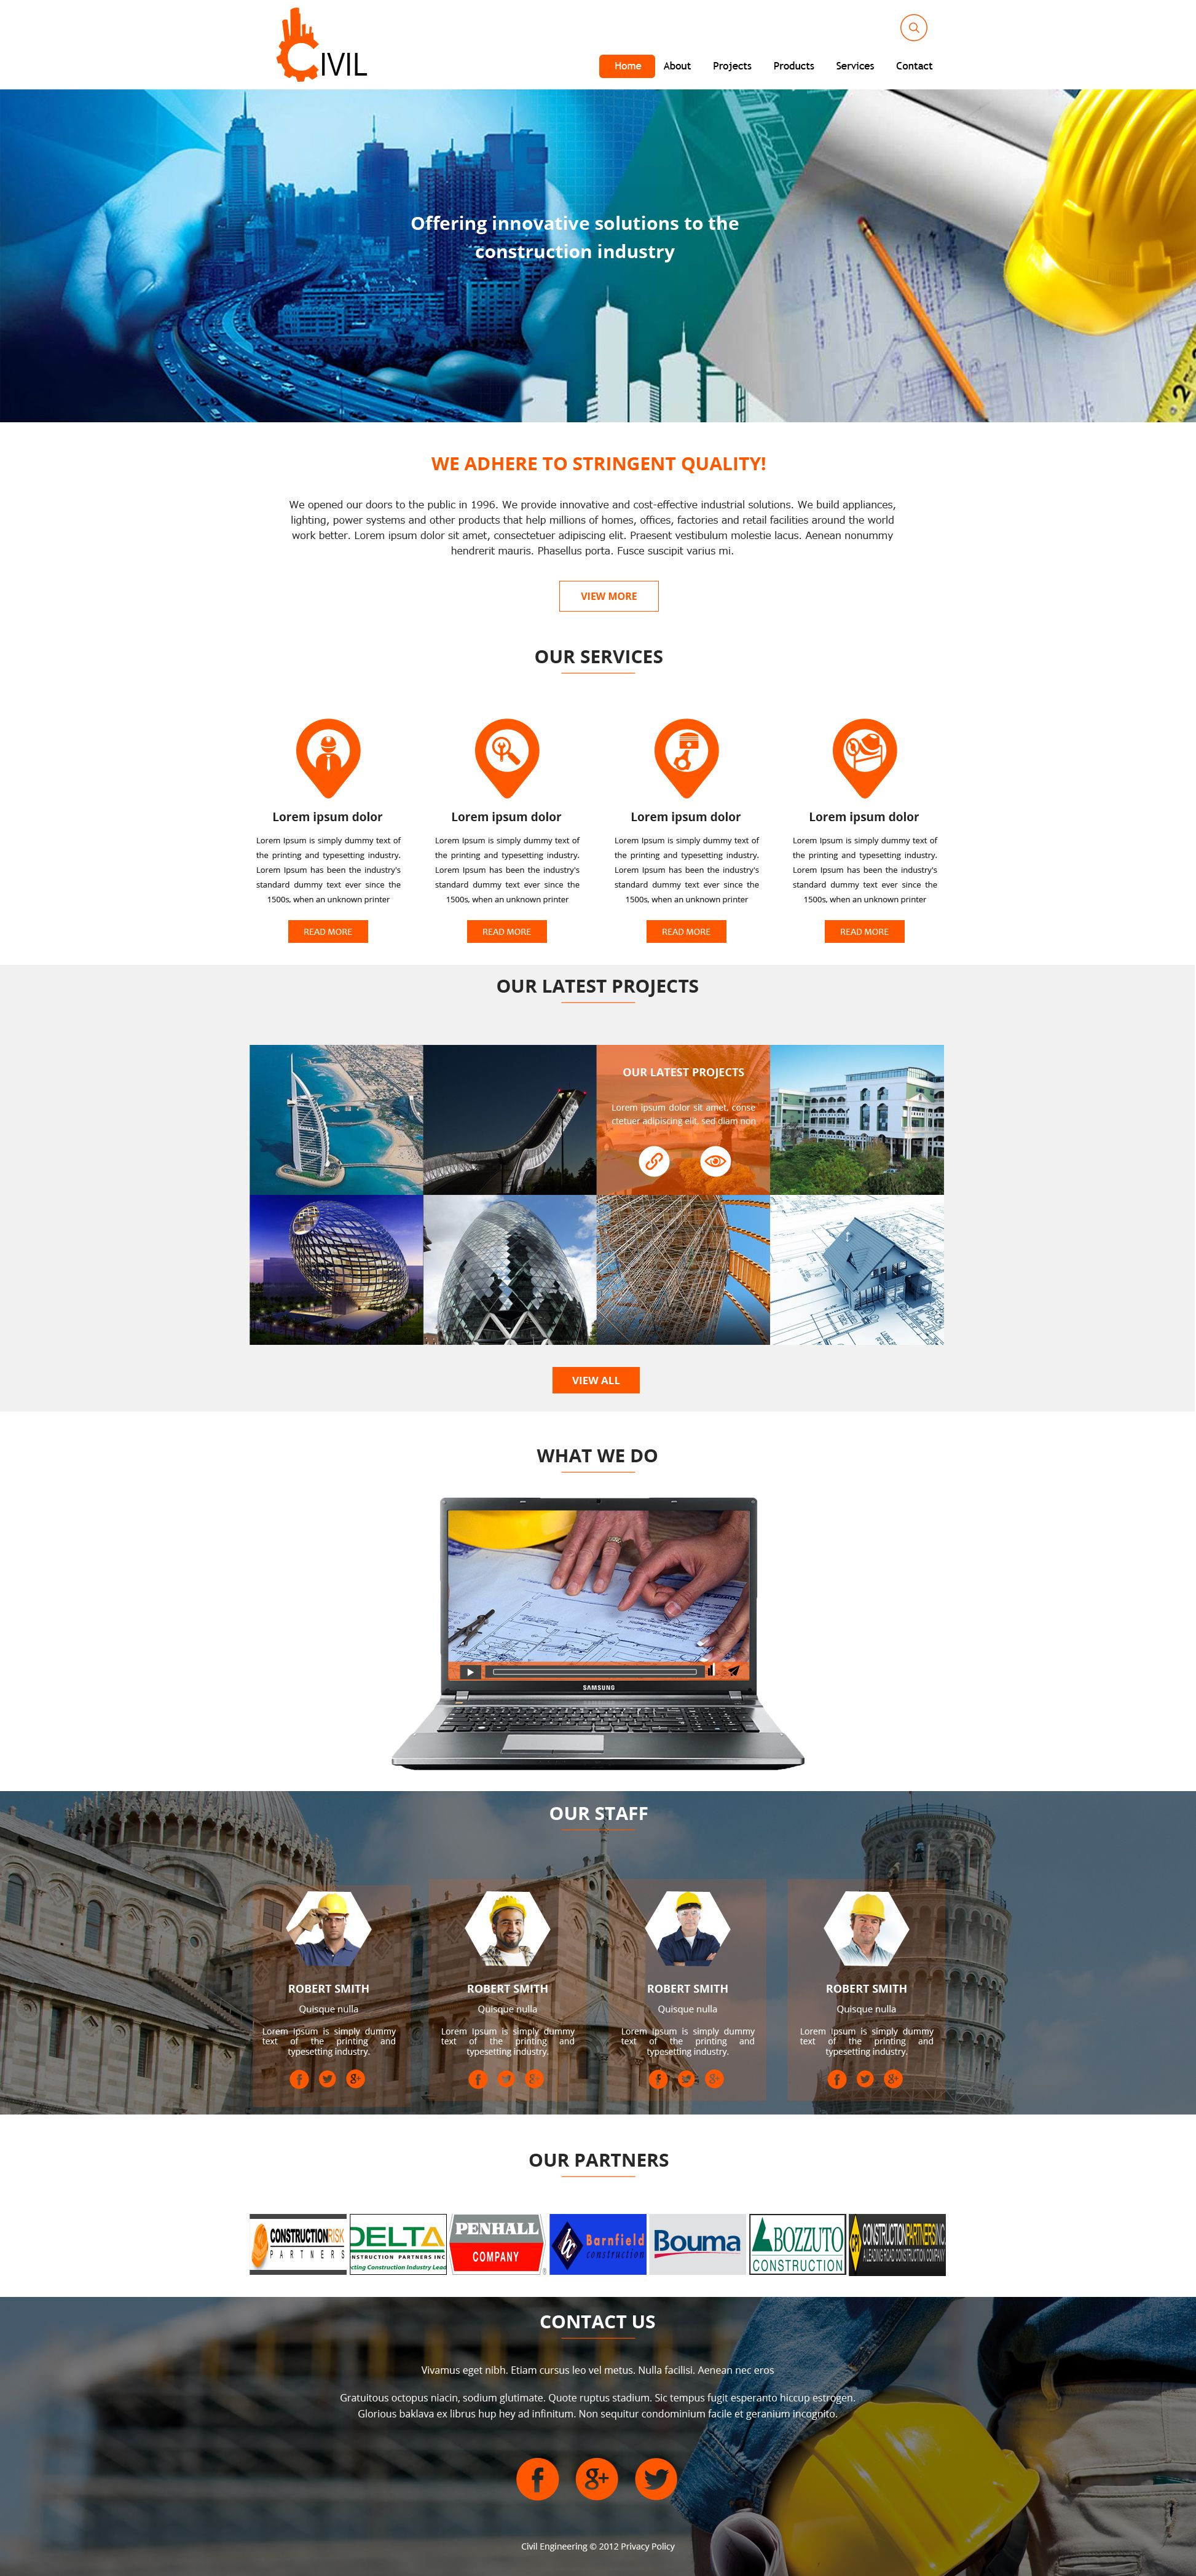 Sell365's Civil Template. One of the best Website Builder in India. Design and customize your own website with our free website templates.